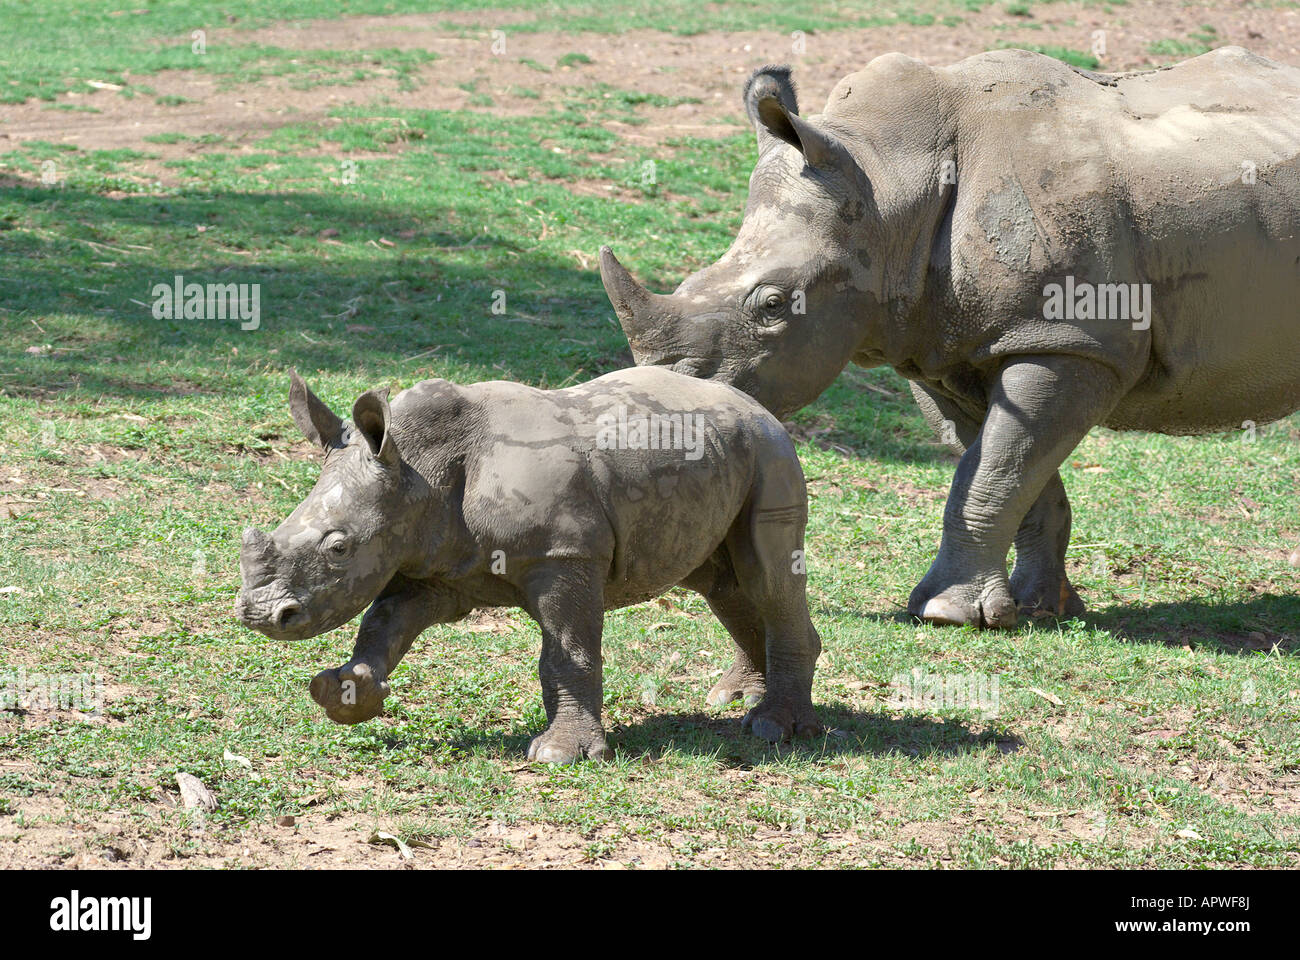 a mother and baby black rhino together - Stock Image